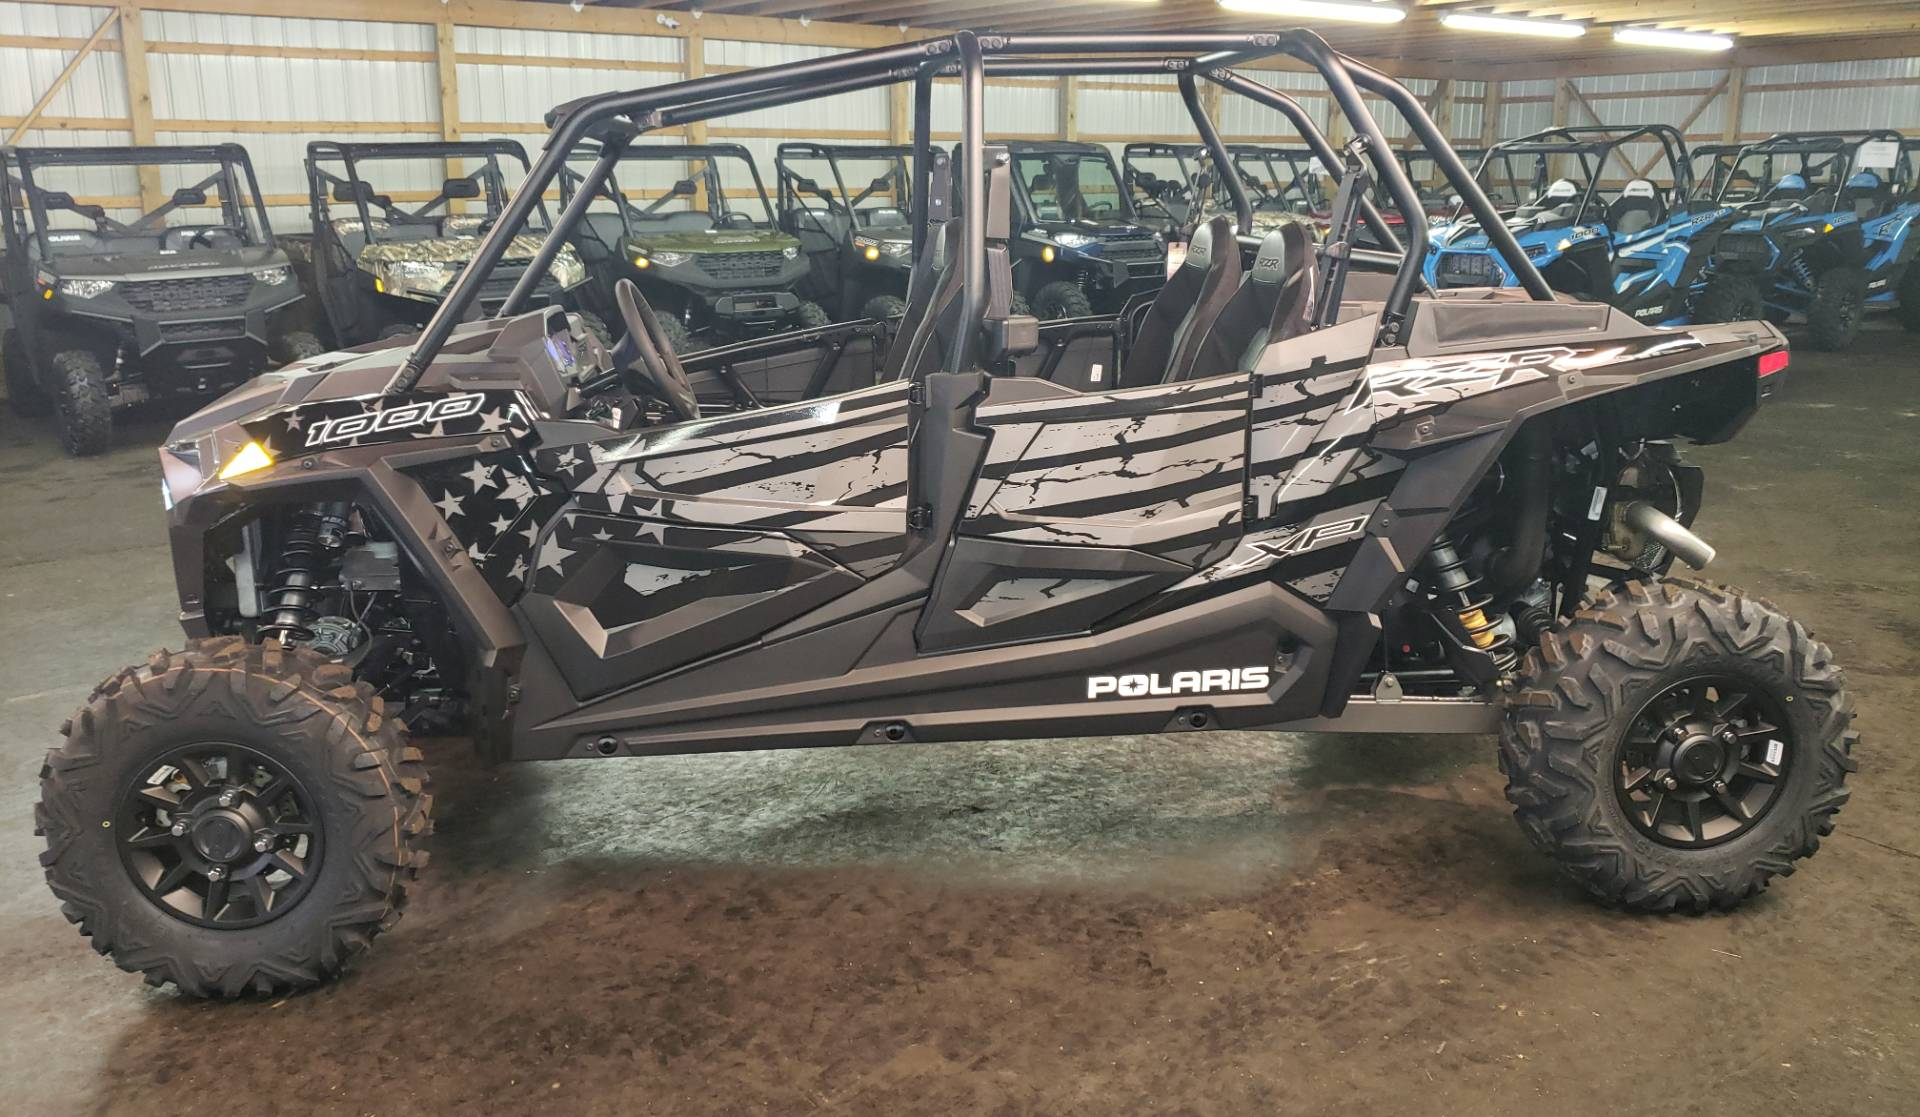 2020 Polaris RZR XP 4 1000 Limited Edition in Beaver Falls, Pennsylvania - Photo 1